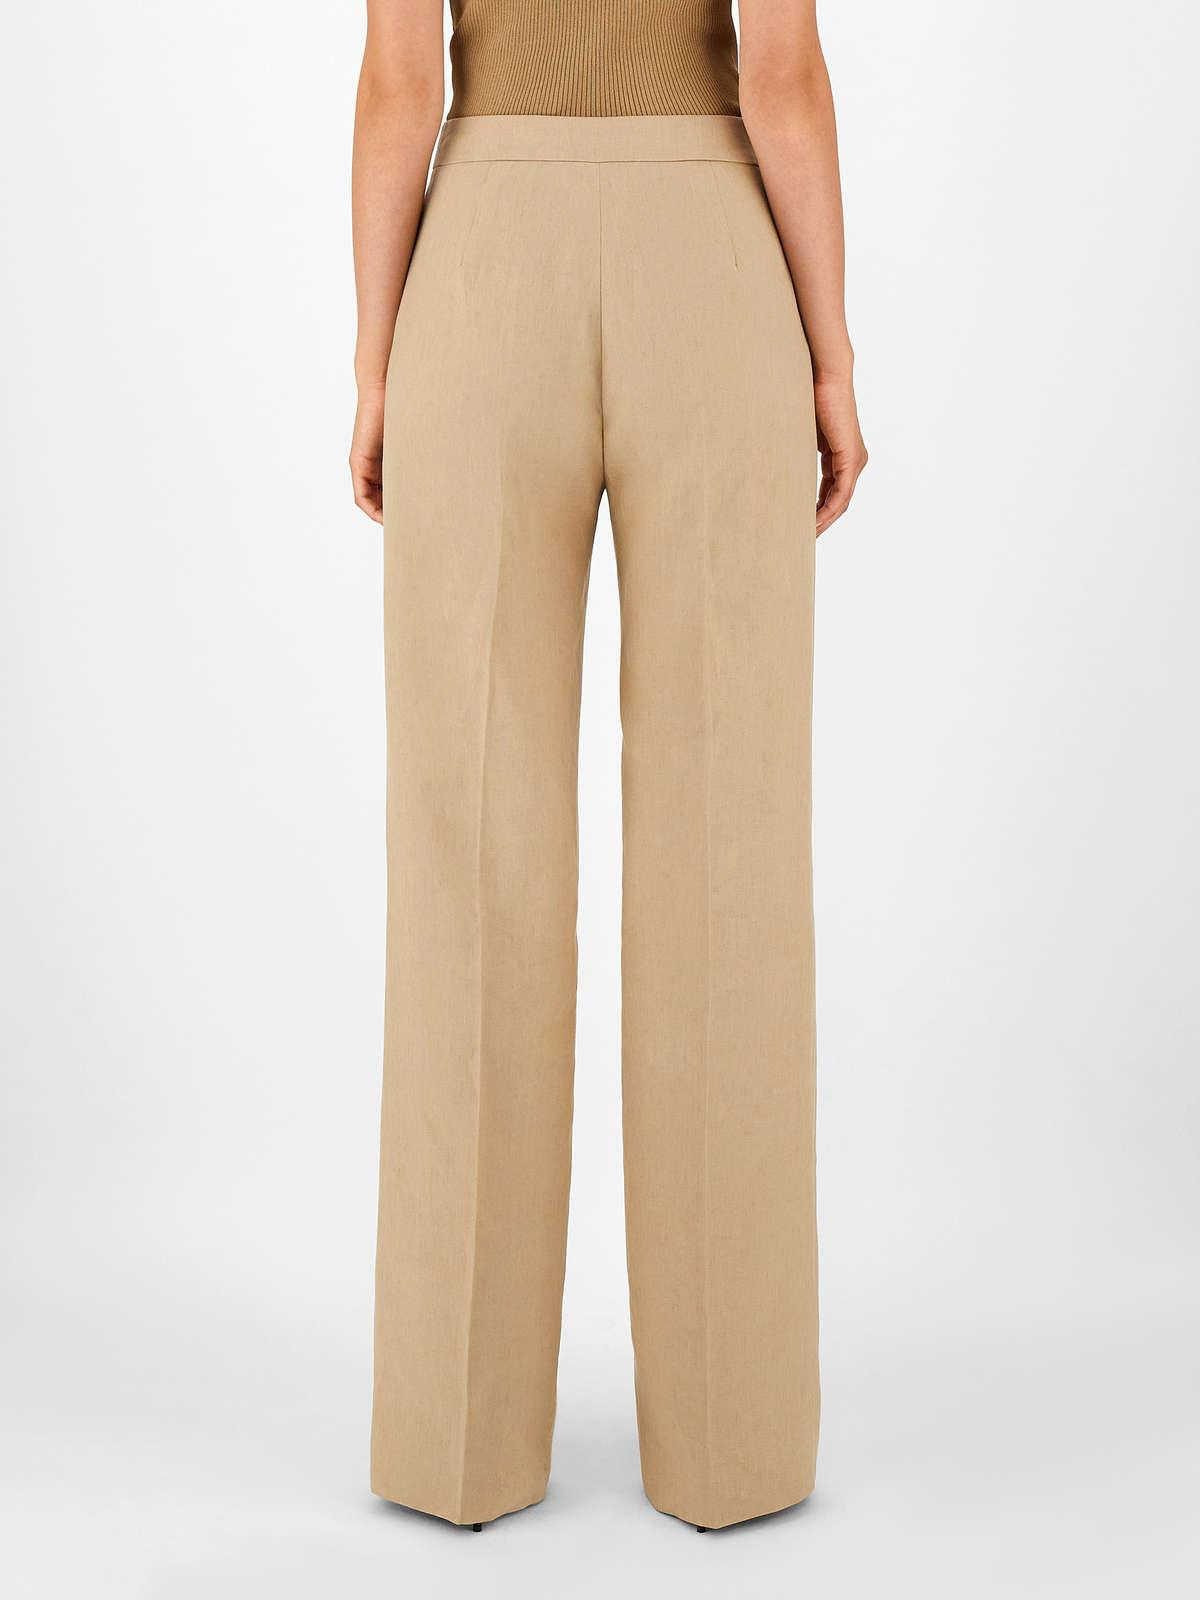 Womens Max Mara Trousers And Jeans | Linen Trousers Camel